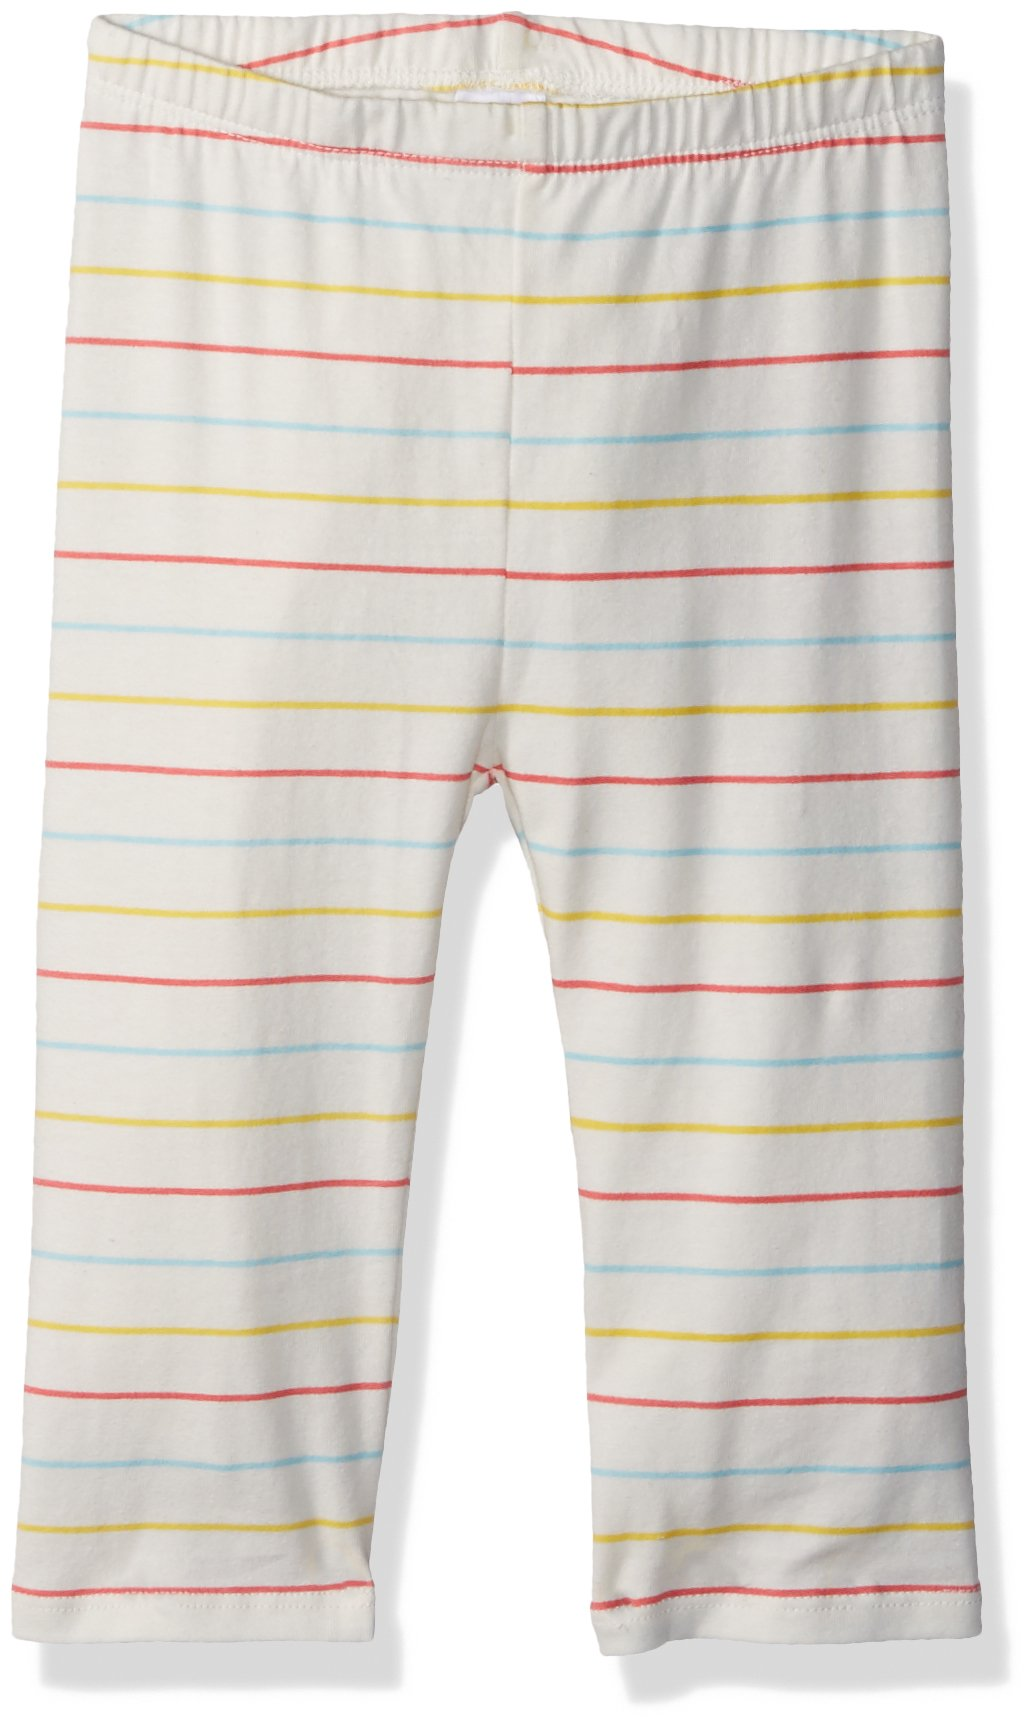 Crazy 8 Toddler Girls' Basic Legging, White/Multi Stripe, 4T